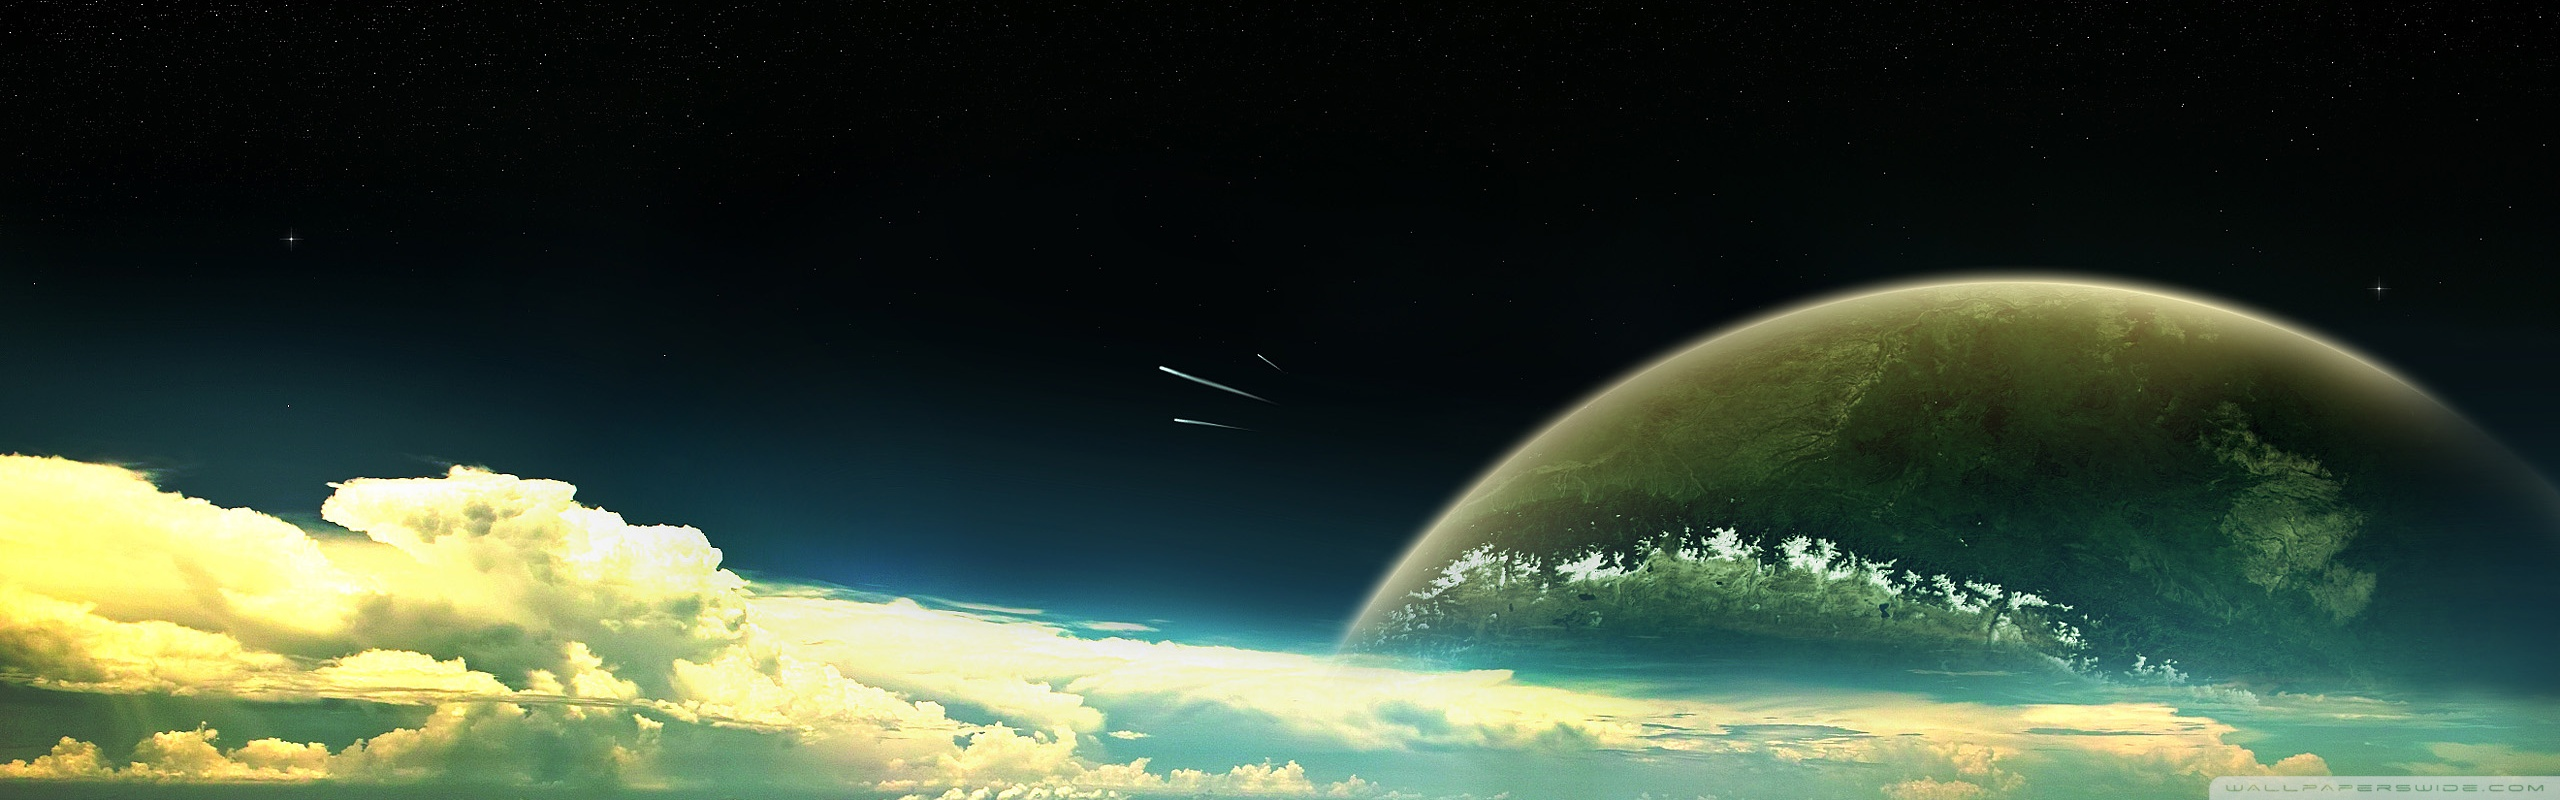 Space Panorama Wallpaper